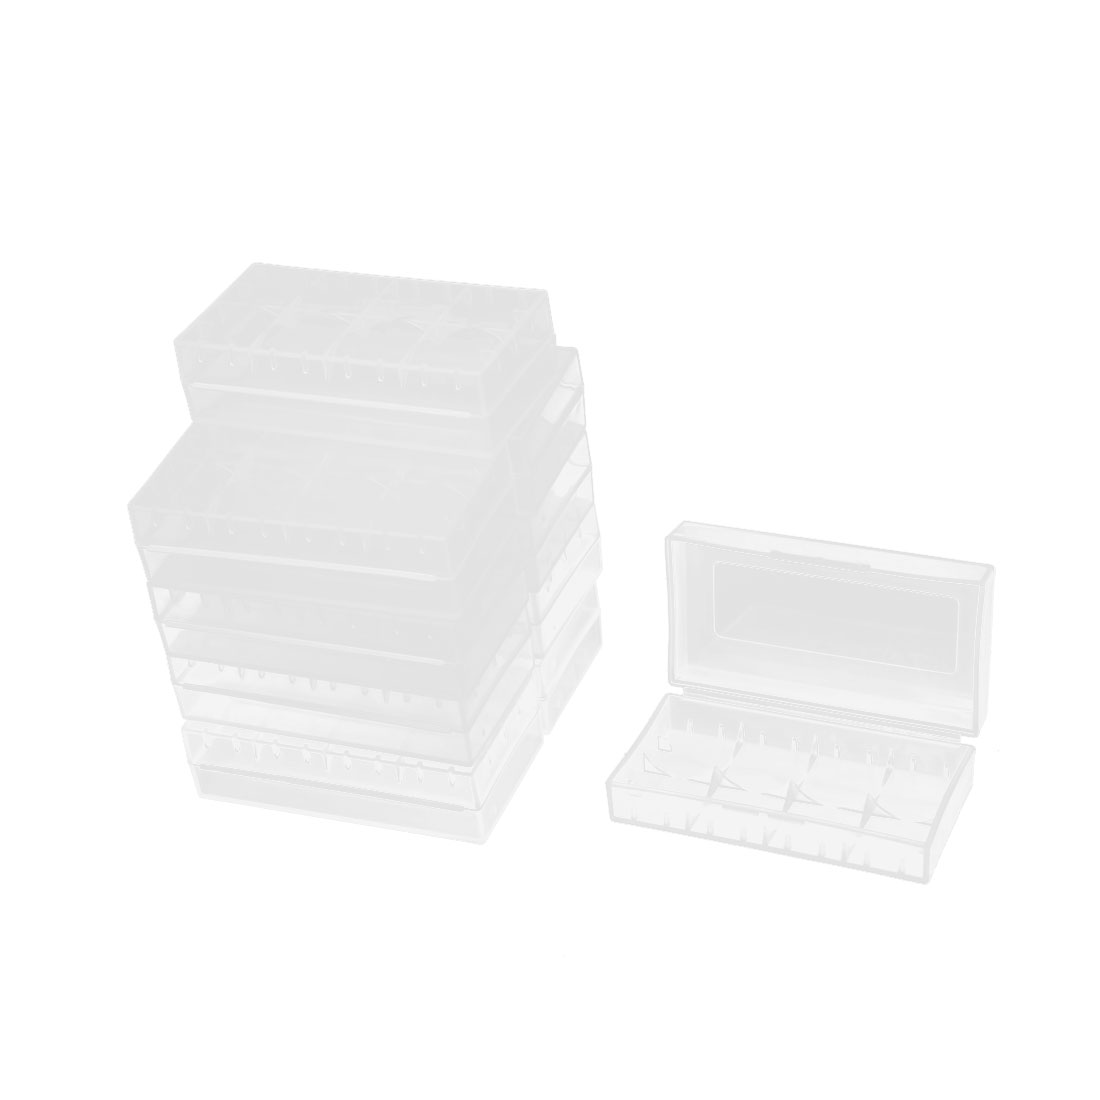 10 Pcs Transparent Earring Jewelry Collection Storage Container Box Case